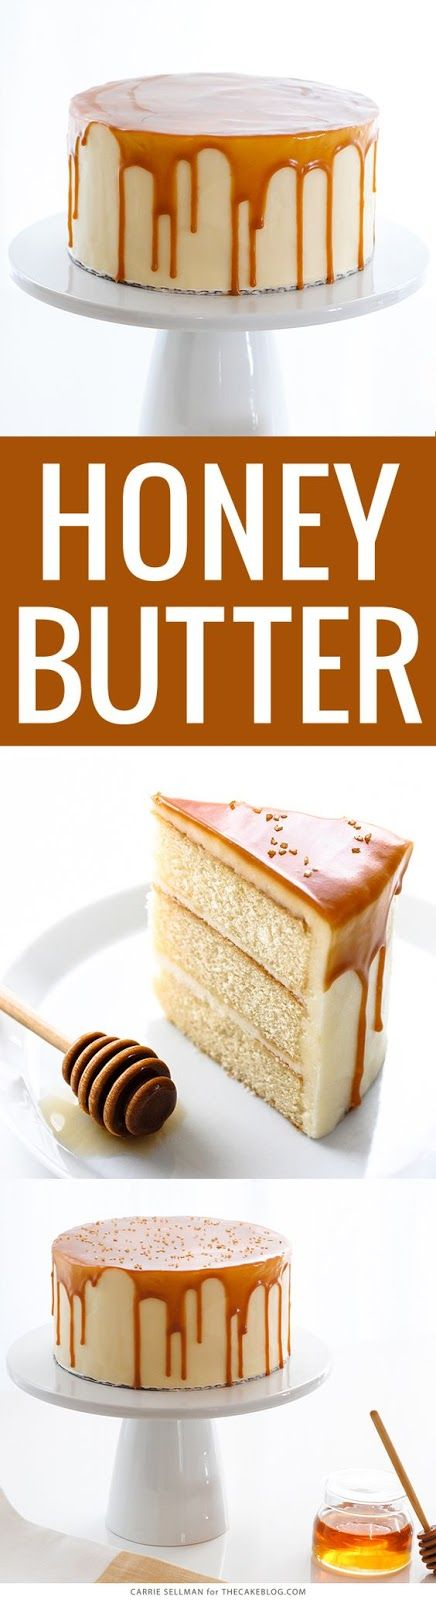 HONEY CAKE WITH HONEY BUTTERSCOTCH GLAZE | Food And Cake Recipes